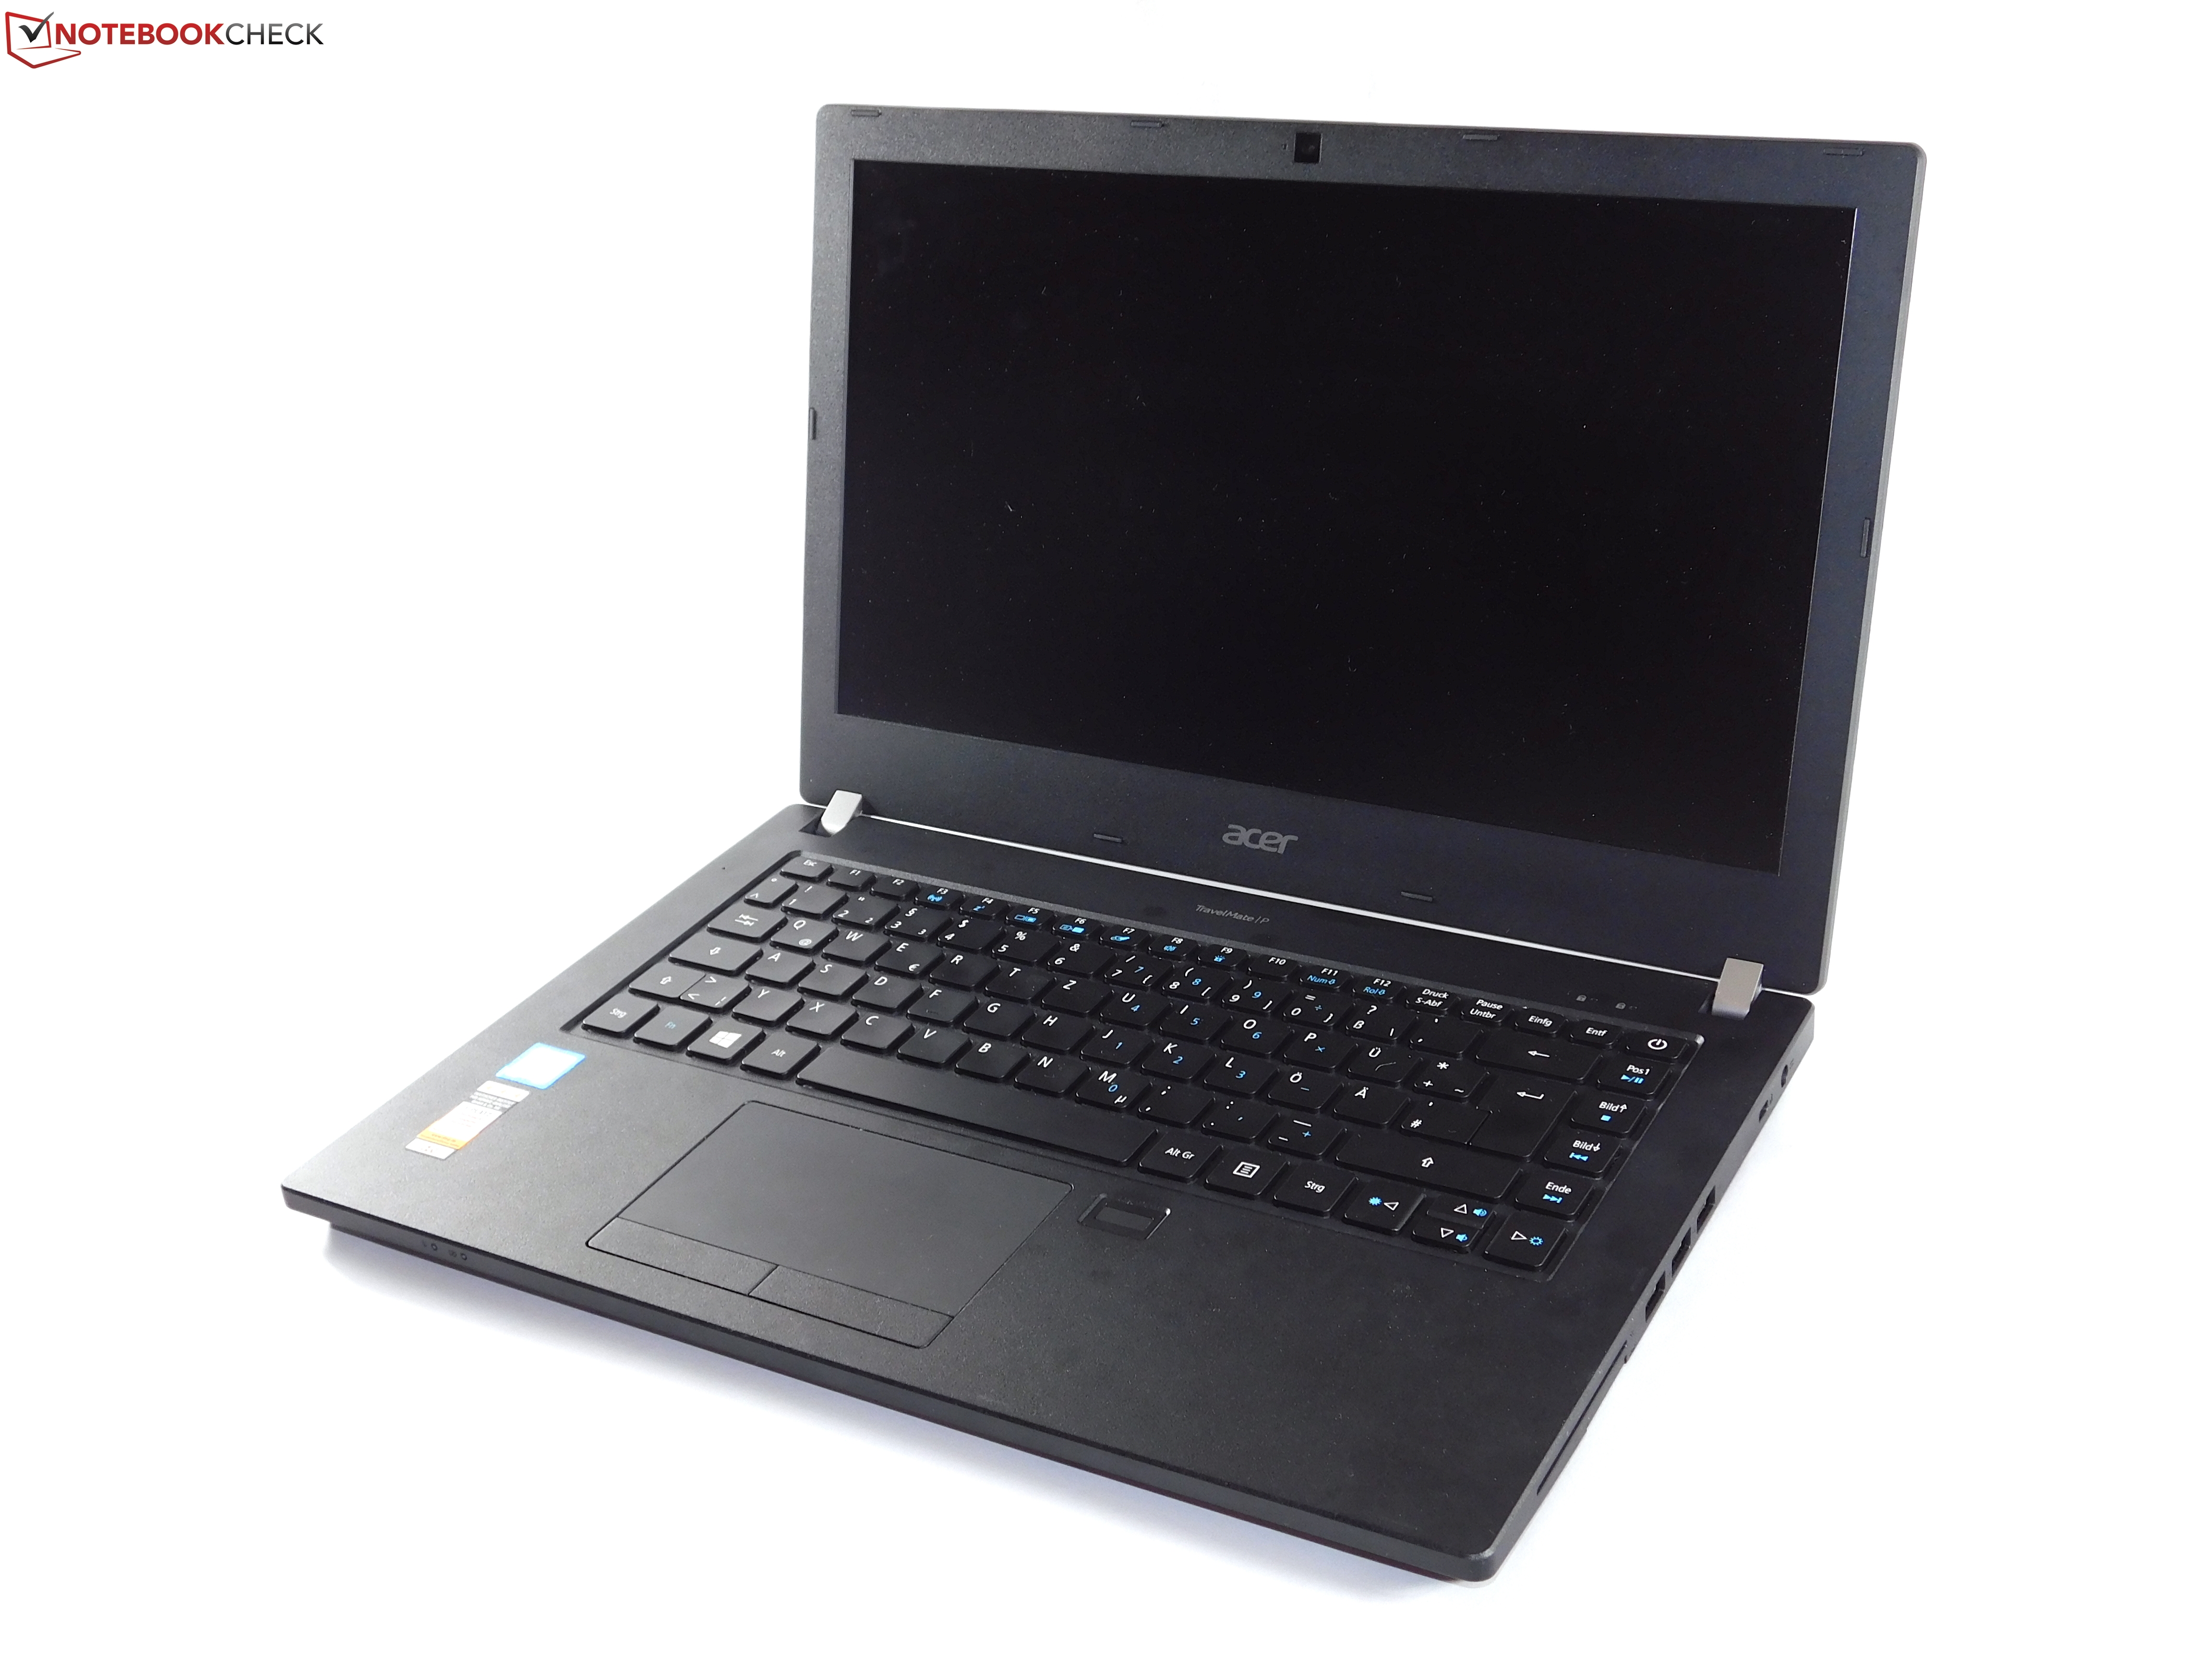 ACER TRAVELMATE 4000 VGA WINDOWS 10 DRIVER DOWNLOAD